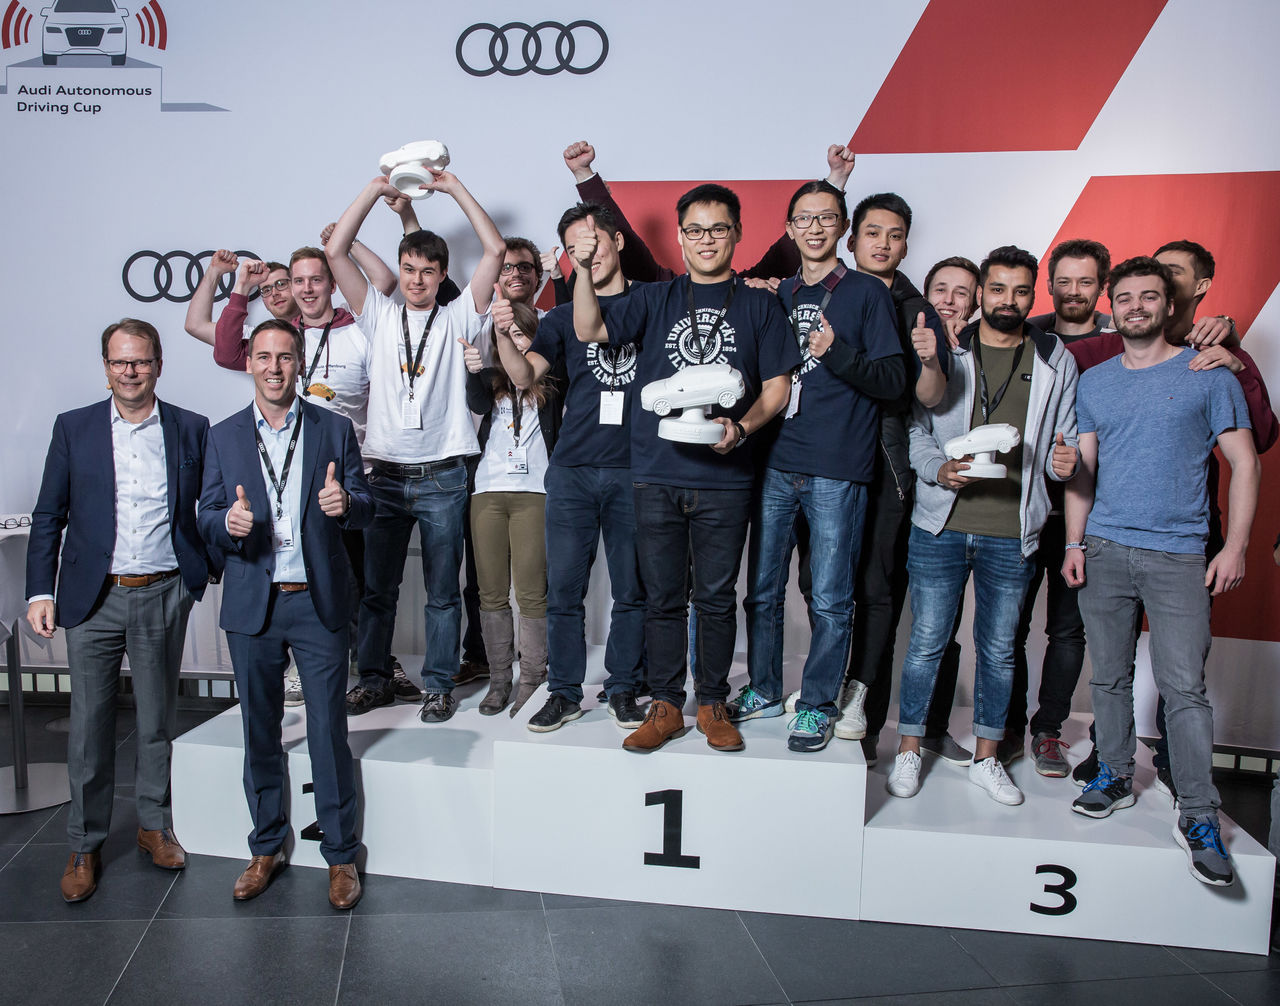 Team AFILSOP of the Ilmenau University wins  ||Audi Autonomous Driving Cup 2017